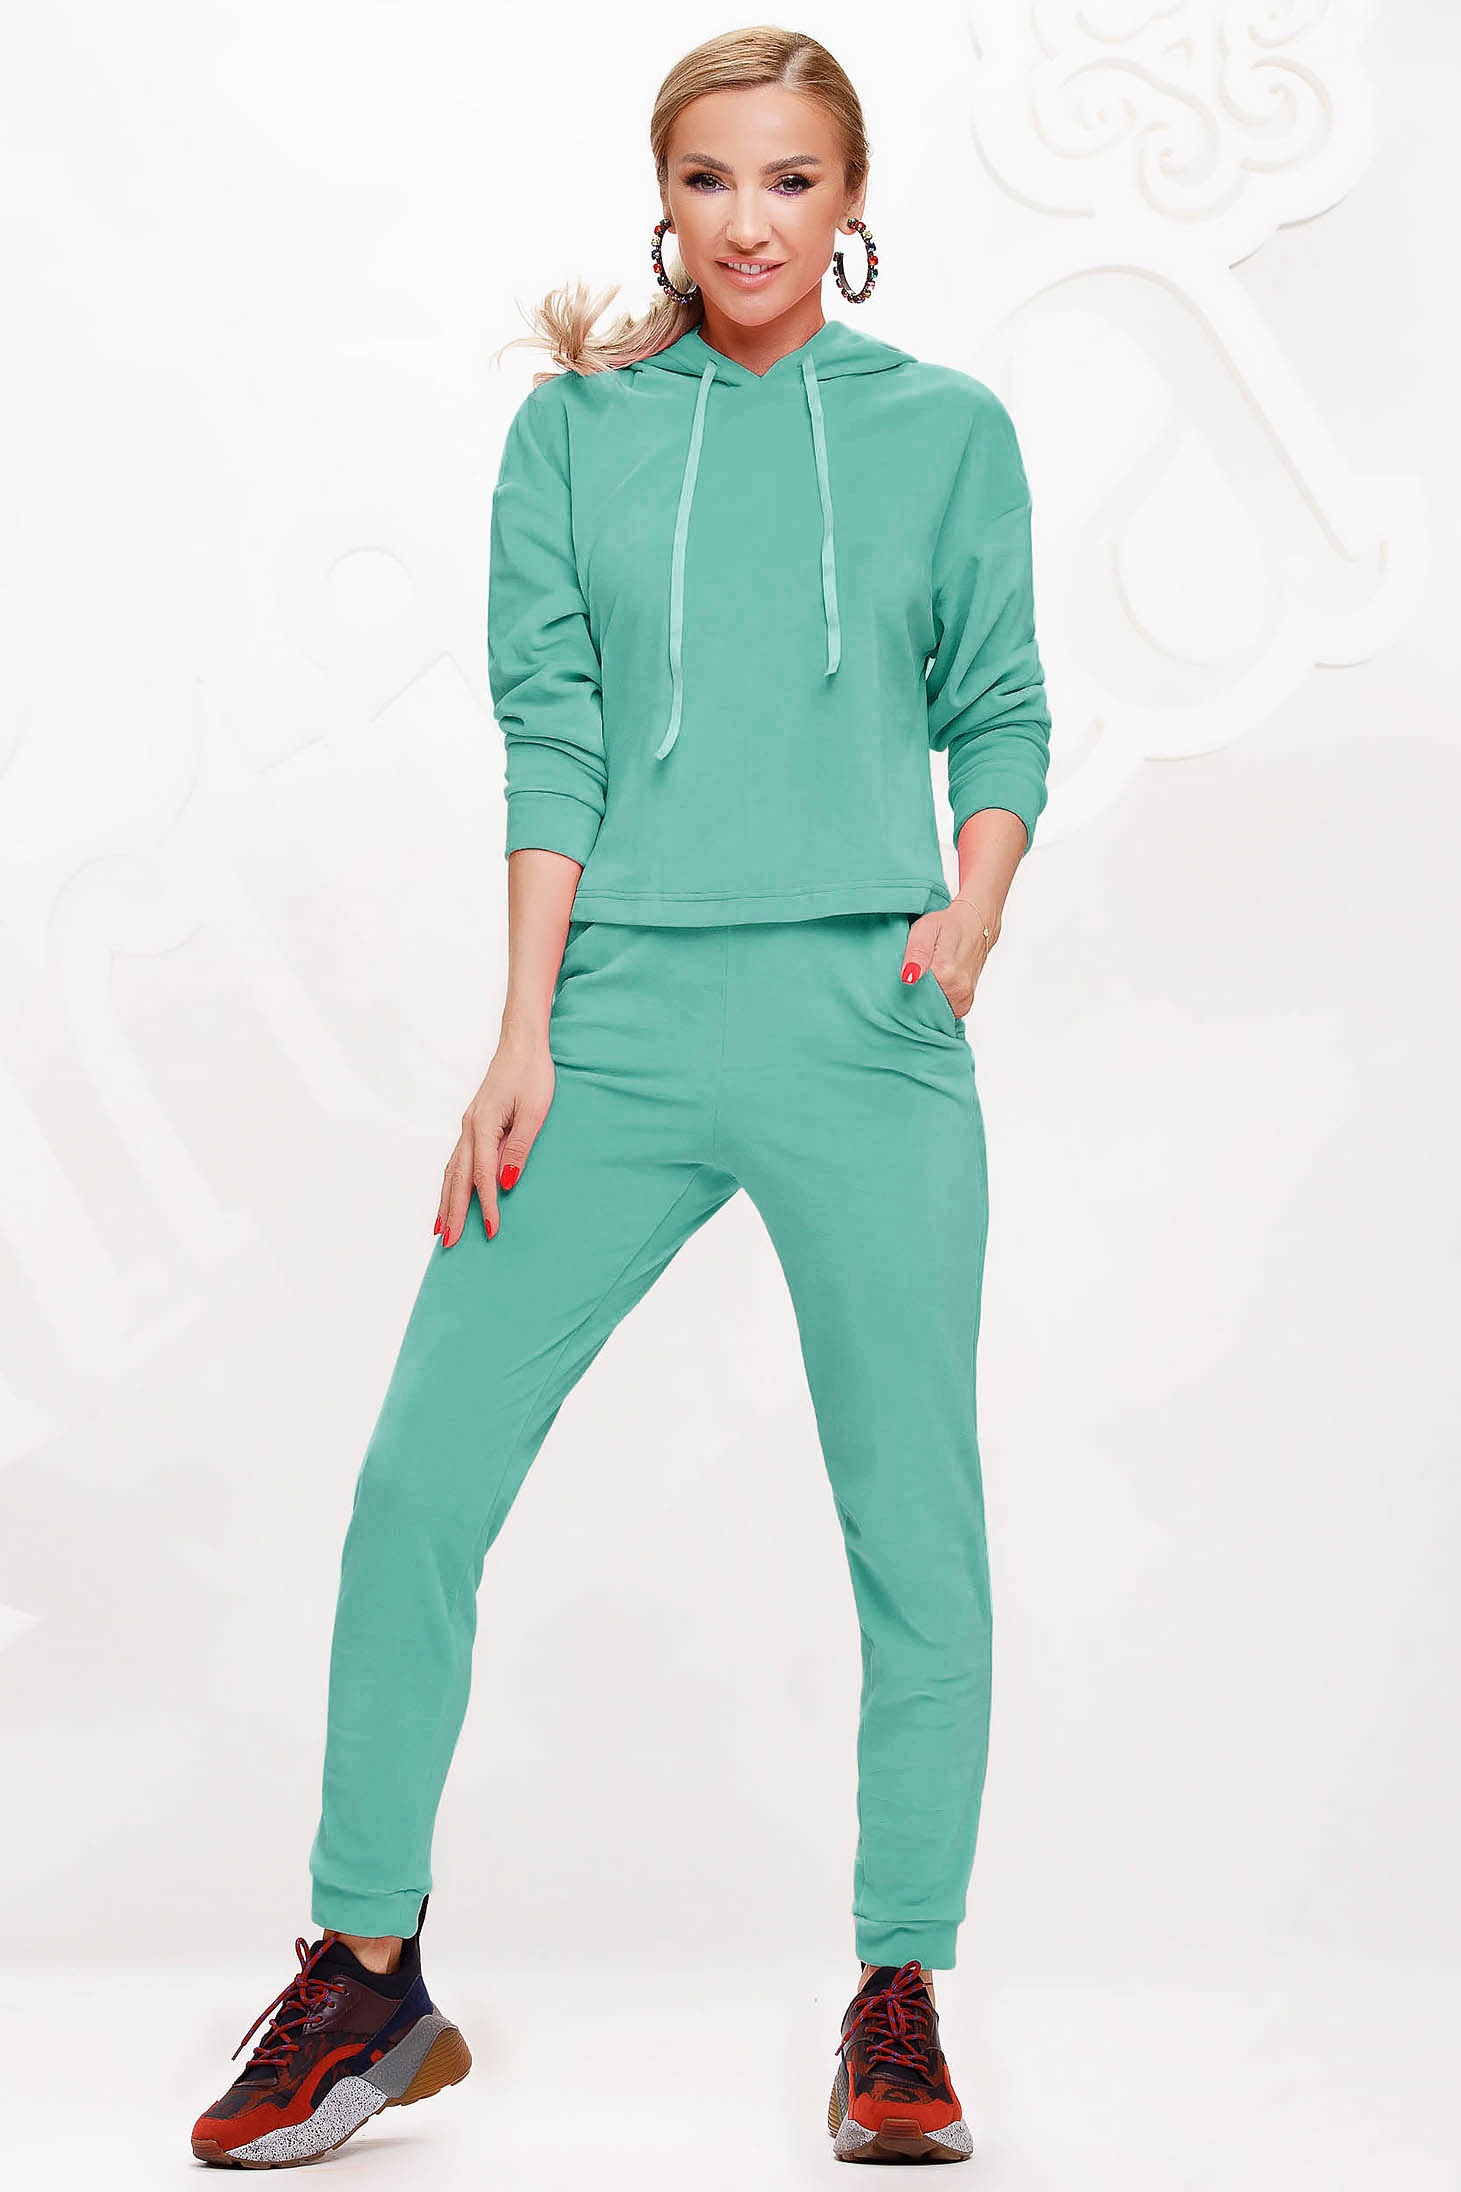 Mint sport 2 pieces 2 pieces loose fit with undetachable hood